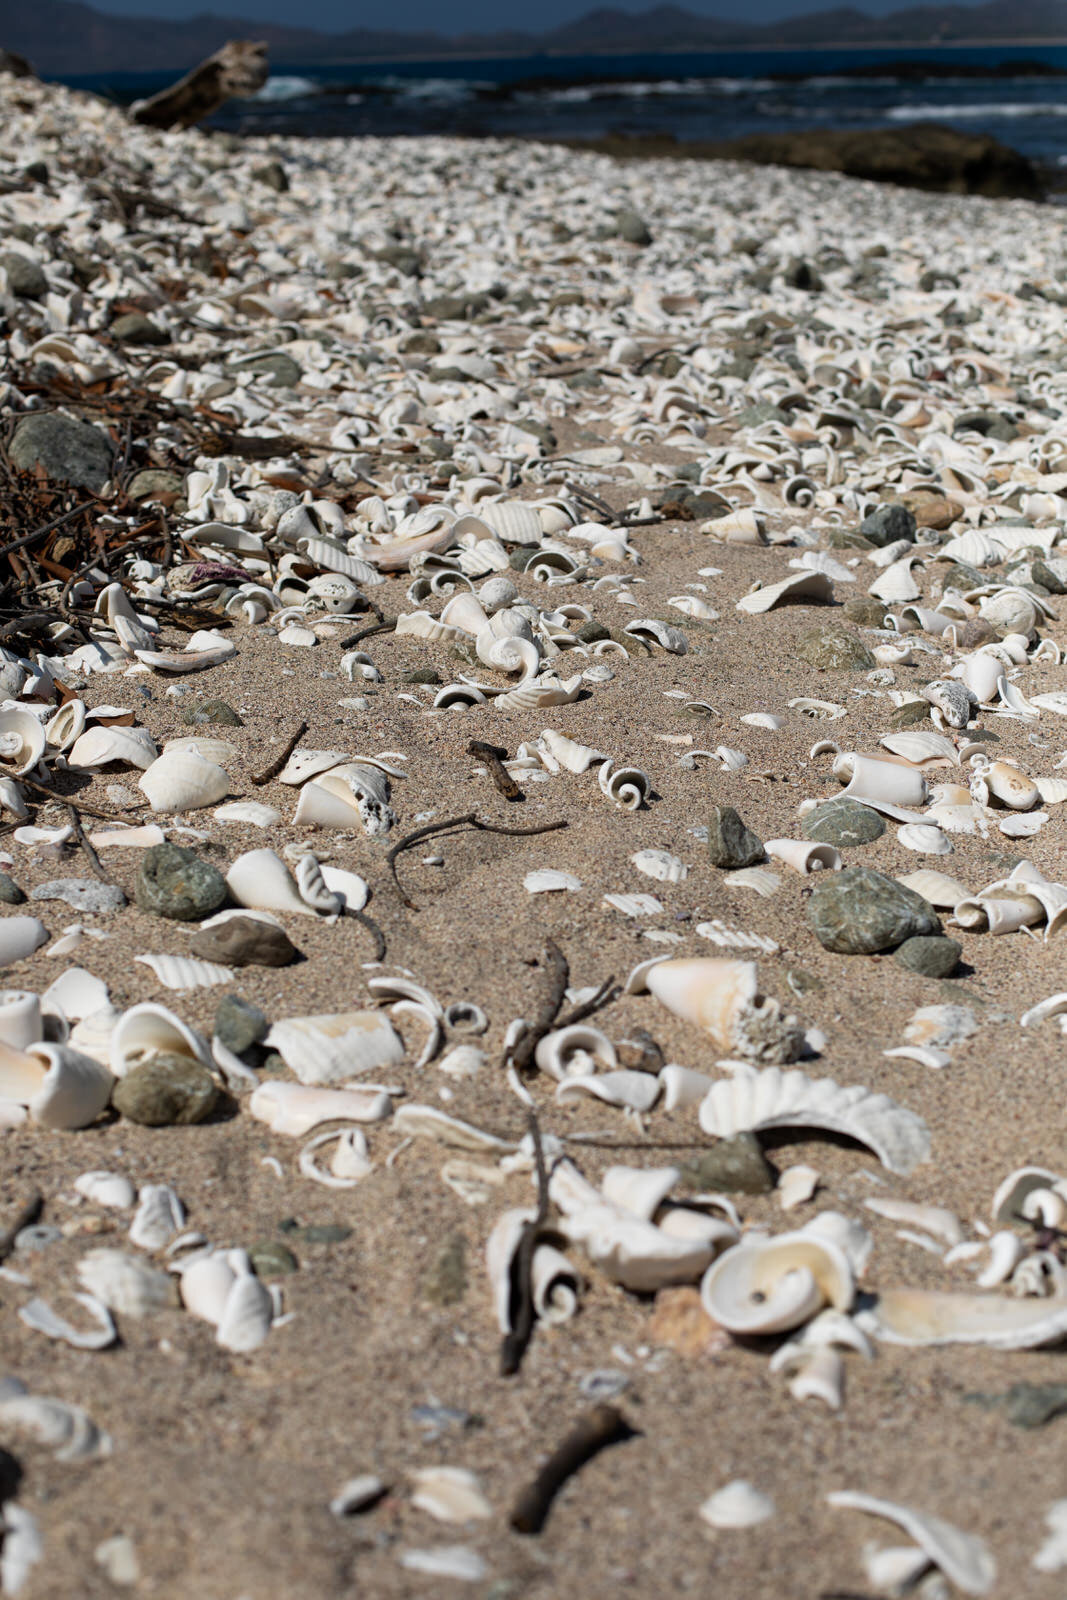 Walking along a deserted island covered in shells.